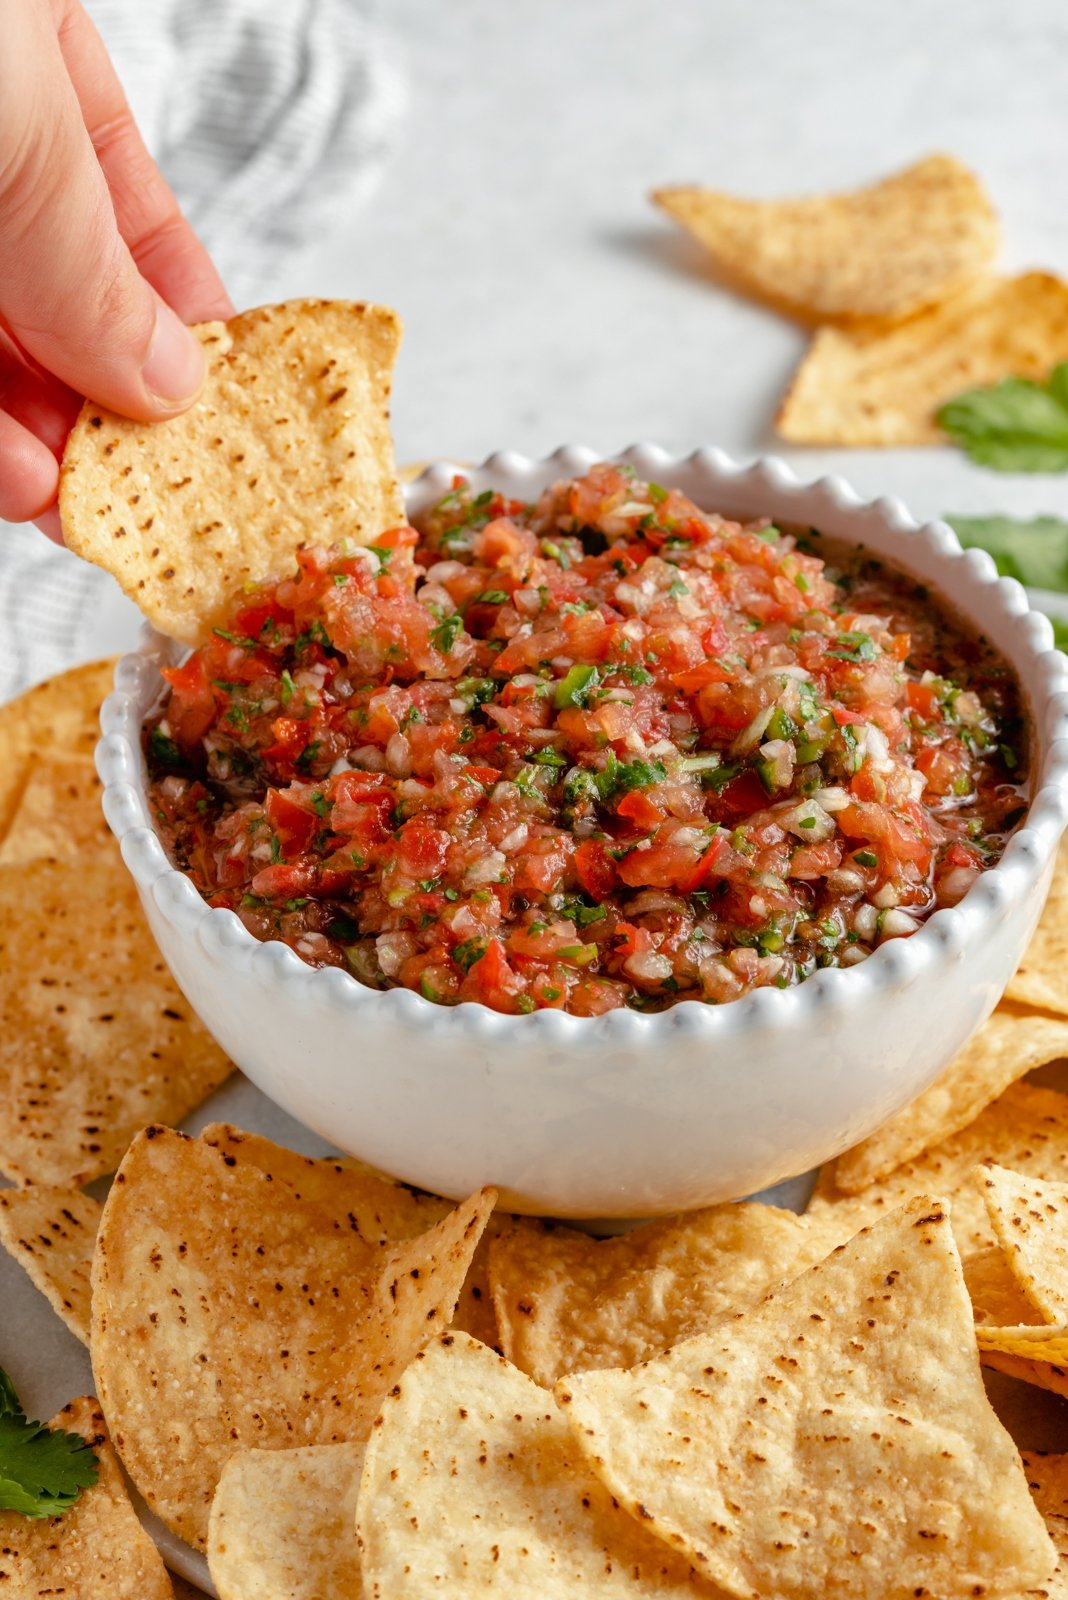 dipping a chip into homemade salsa